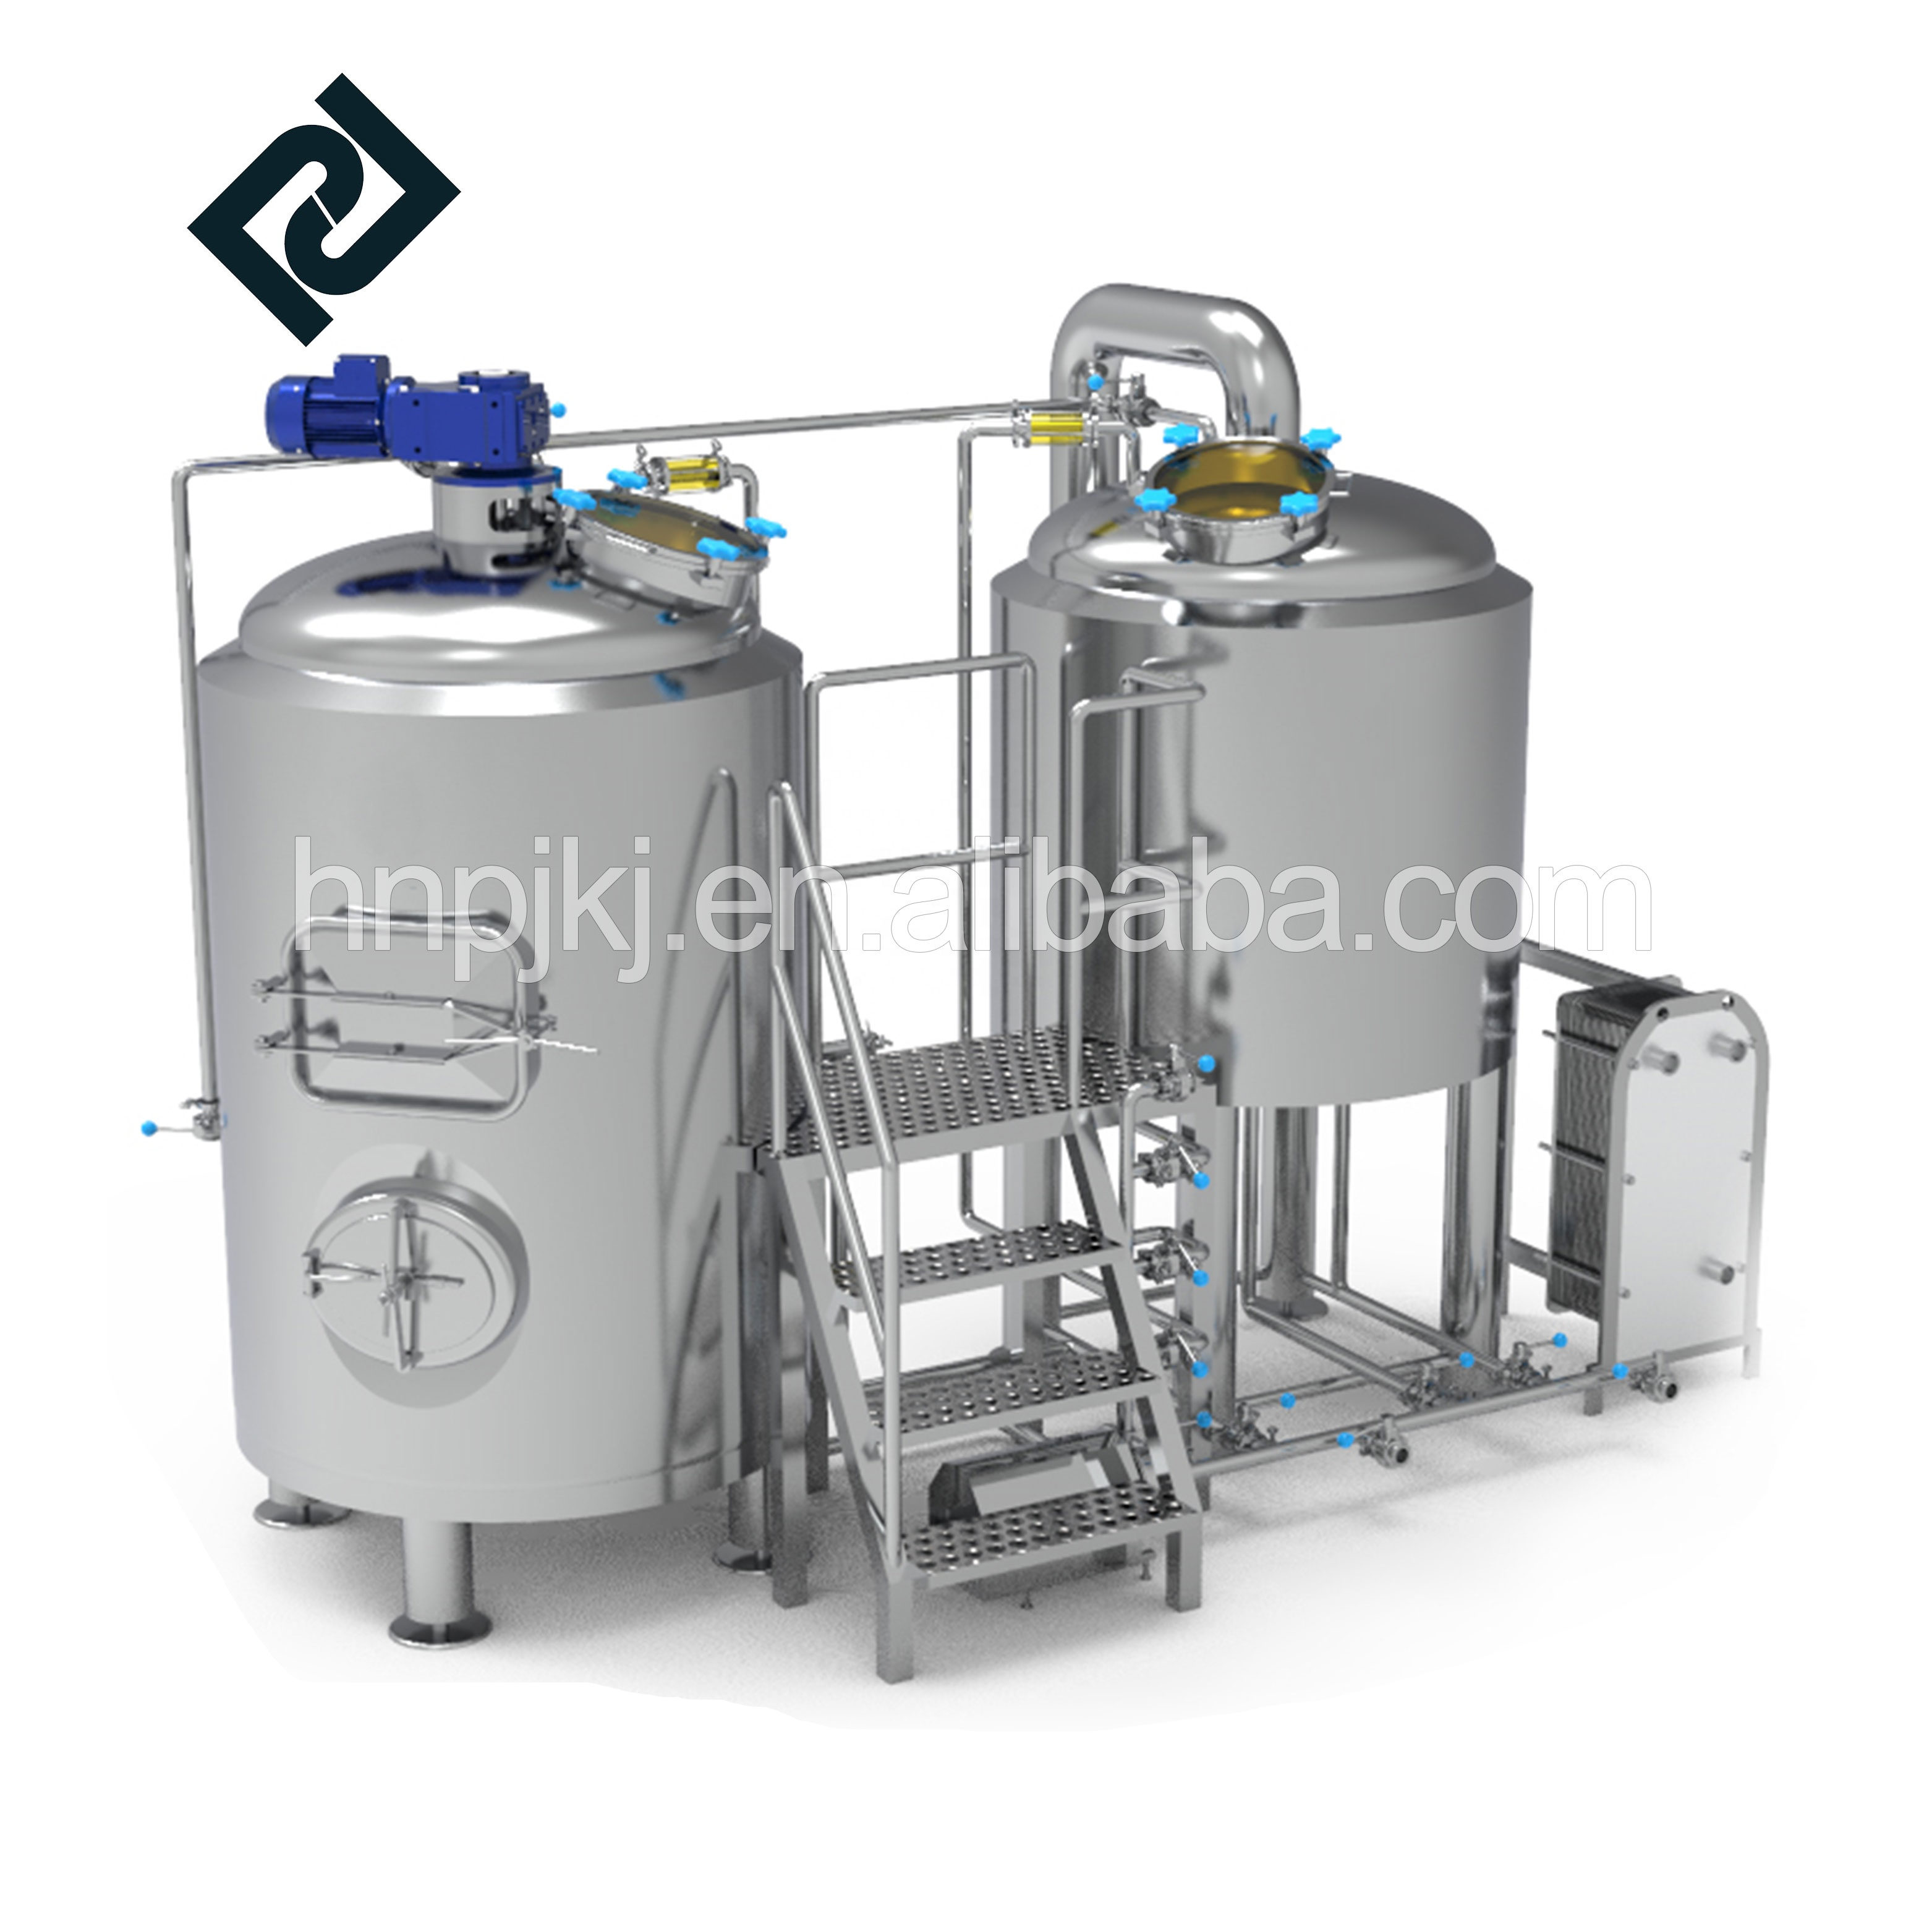 7bbl automatic beer brewing machine beer brewing equipment for pub brewery